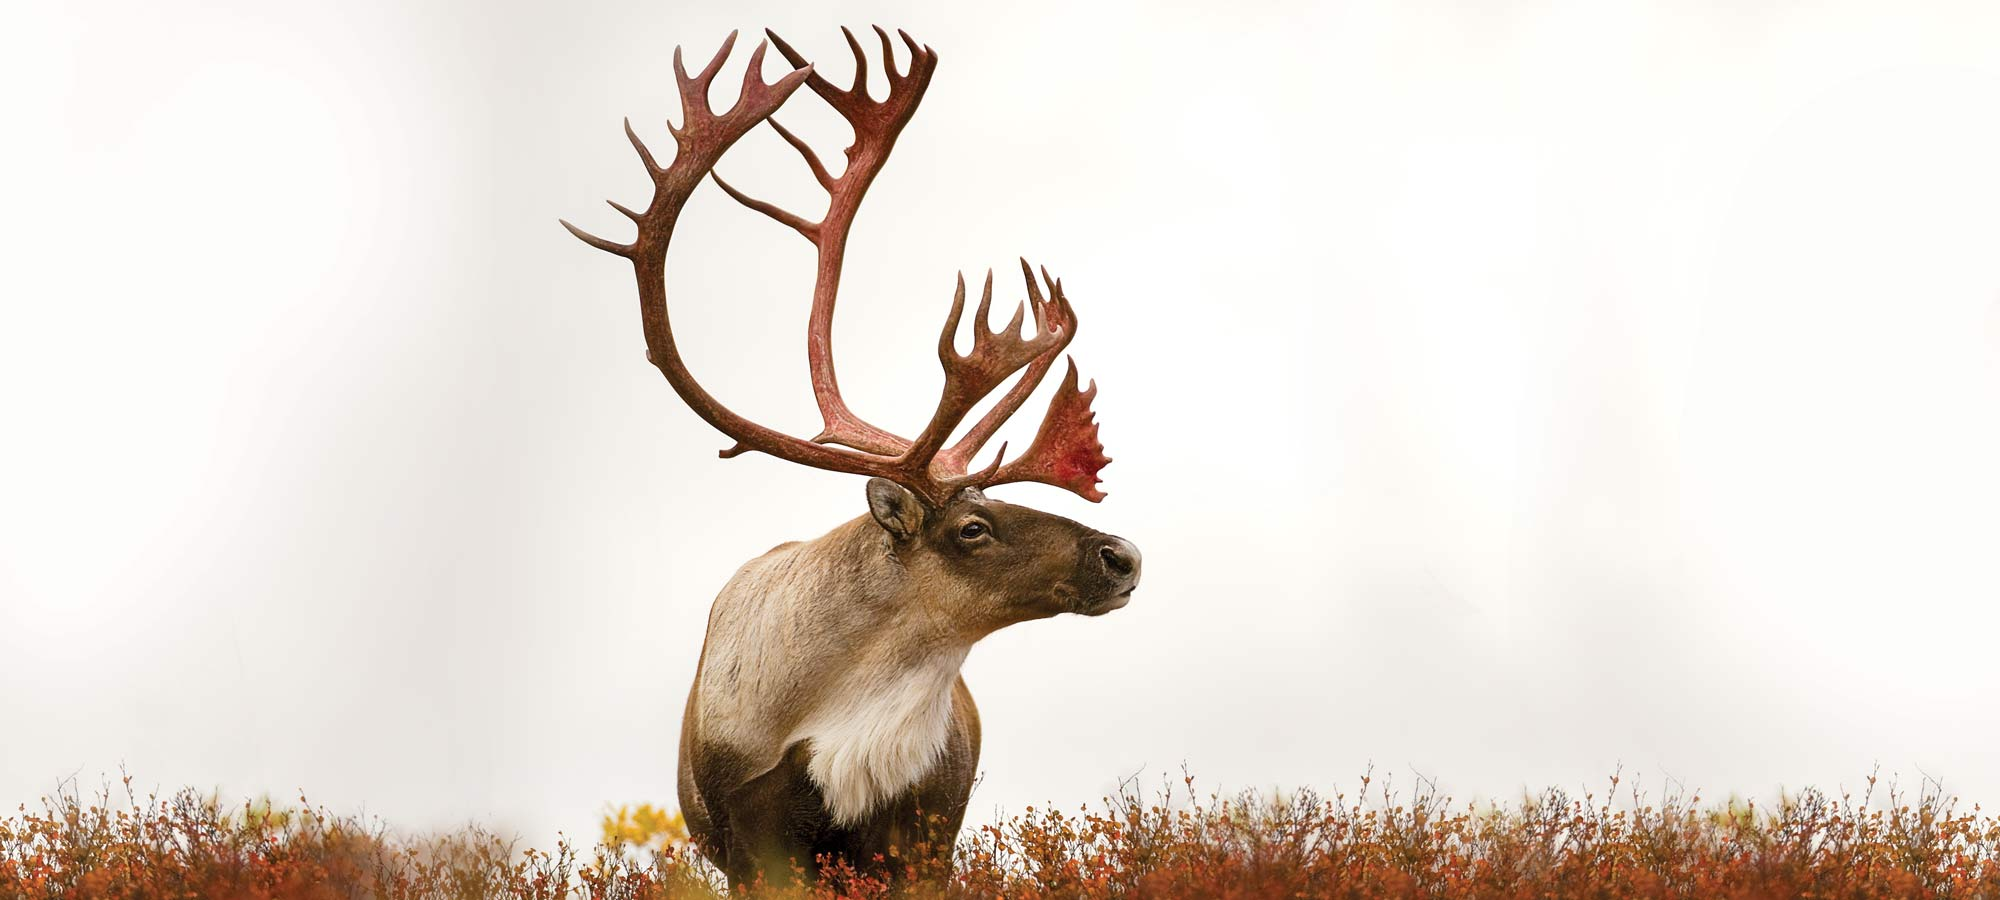 one caribou standing alone in a field